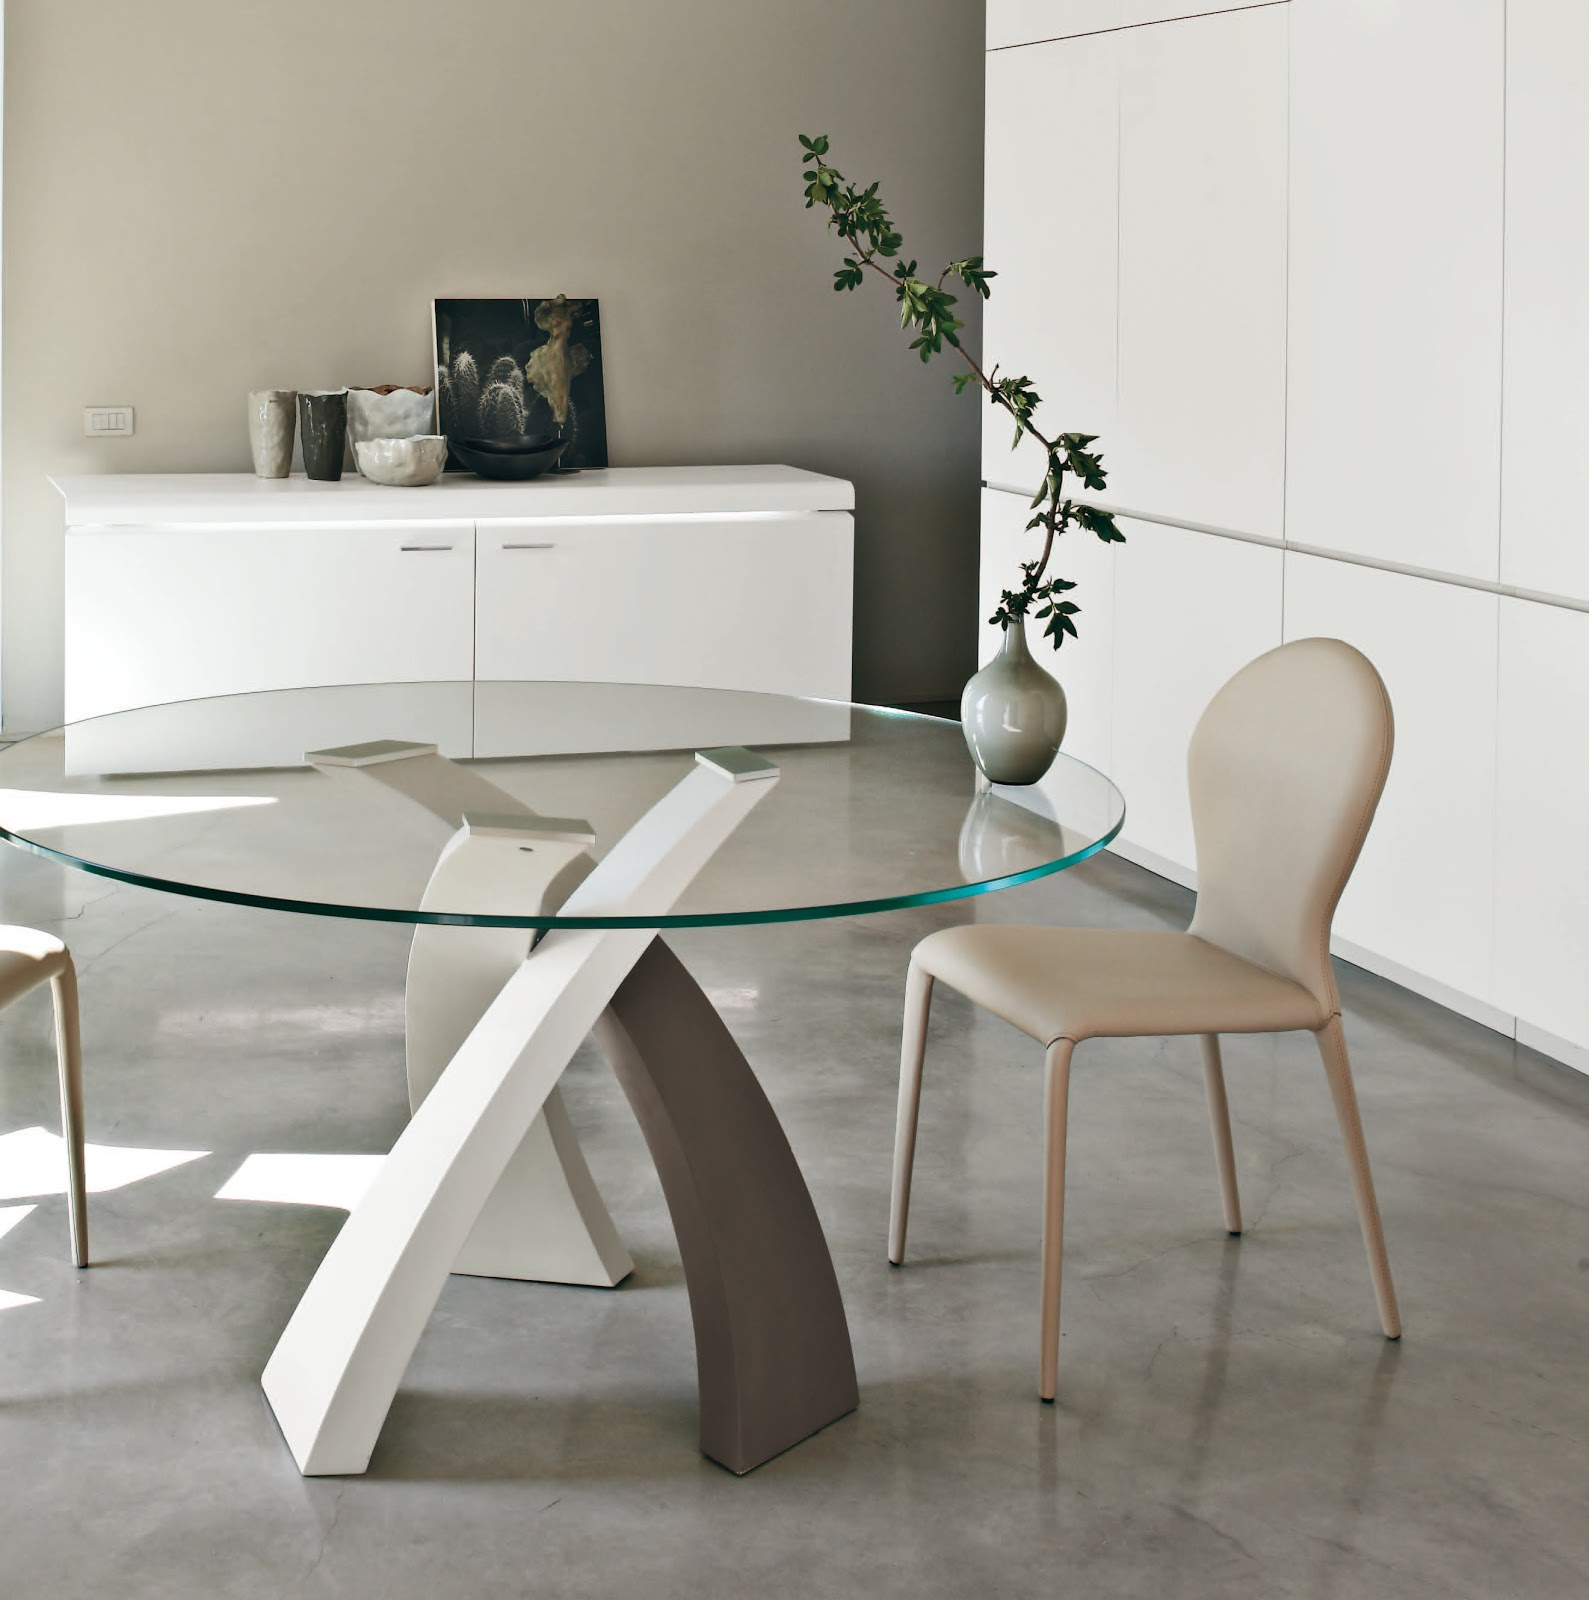 Table ronde verre design - Table ronde en verre pas cher ...